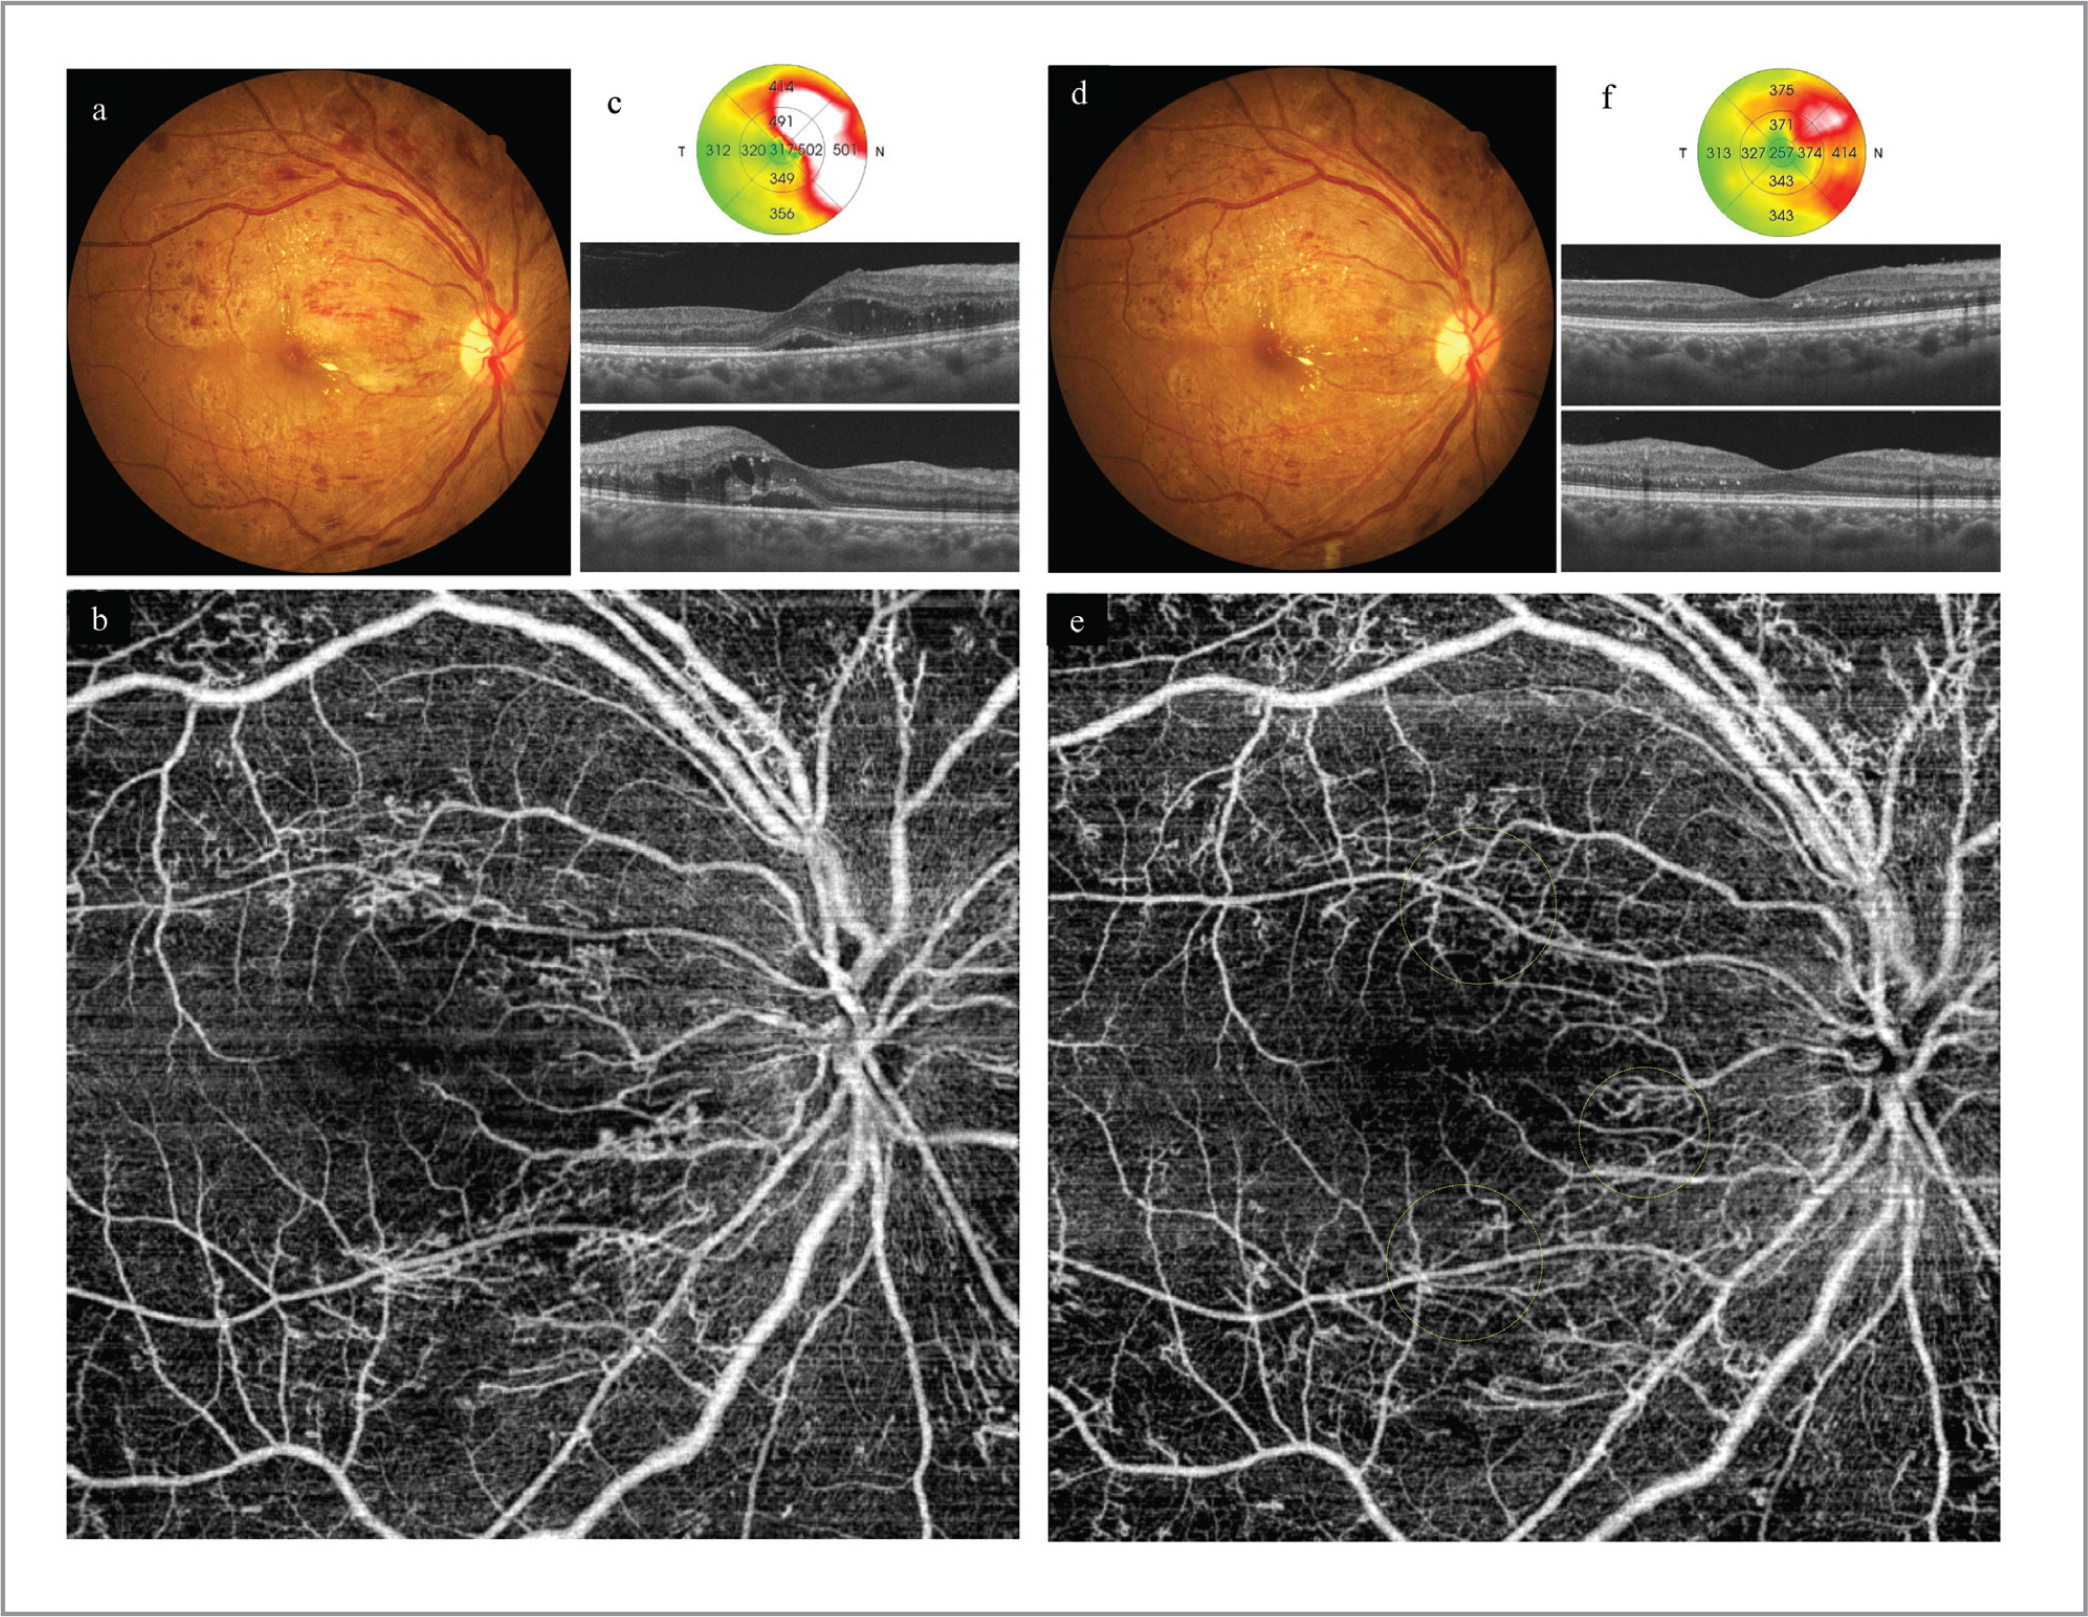 The fundus images before (a–c) and after (d–e) starting antihypertensive therapy. (a) Before therapy (blood pressure [BP] 15 weeks after delivery, 150/100 mm Hg), marked flame-shaped hemorrhages and some hard exudates are seen. (b) A 9 × 9-mm optical coherence tomography angiography (OCTA) image of the full-thickness retina shows irregulary dilated radial peripapillary capillaries (RPCs). (c) A macular OCT map (upper row) shows macular edema, especially nasally; horizonal (middle row) and vertical (lower row) images show cystic changes in the outer nuclear layer and subretinal fuild under the fovea. (d). After hypertensive therapy (BP 17 weeks after delivery, 128/81 mm Hg), the hemorrhages are decreased. (e) OCTA also shows that some areas of dilation of the RPCs are decreased (yellow circles). (f) OCT images show that the cystic edema is decreased and the subretinal fluid has resolved.